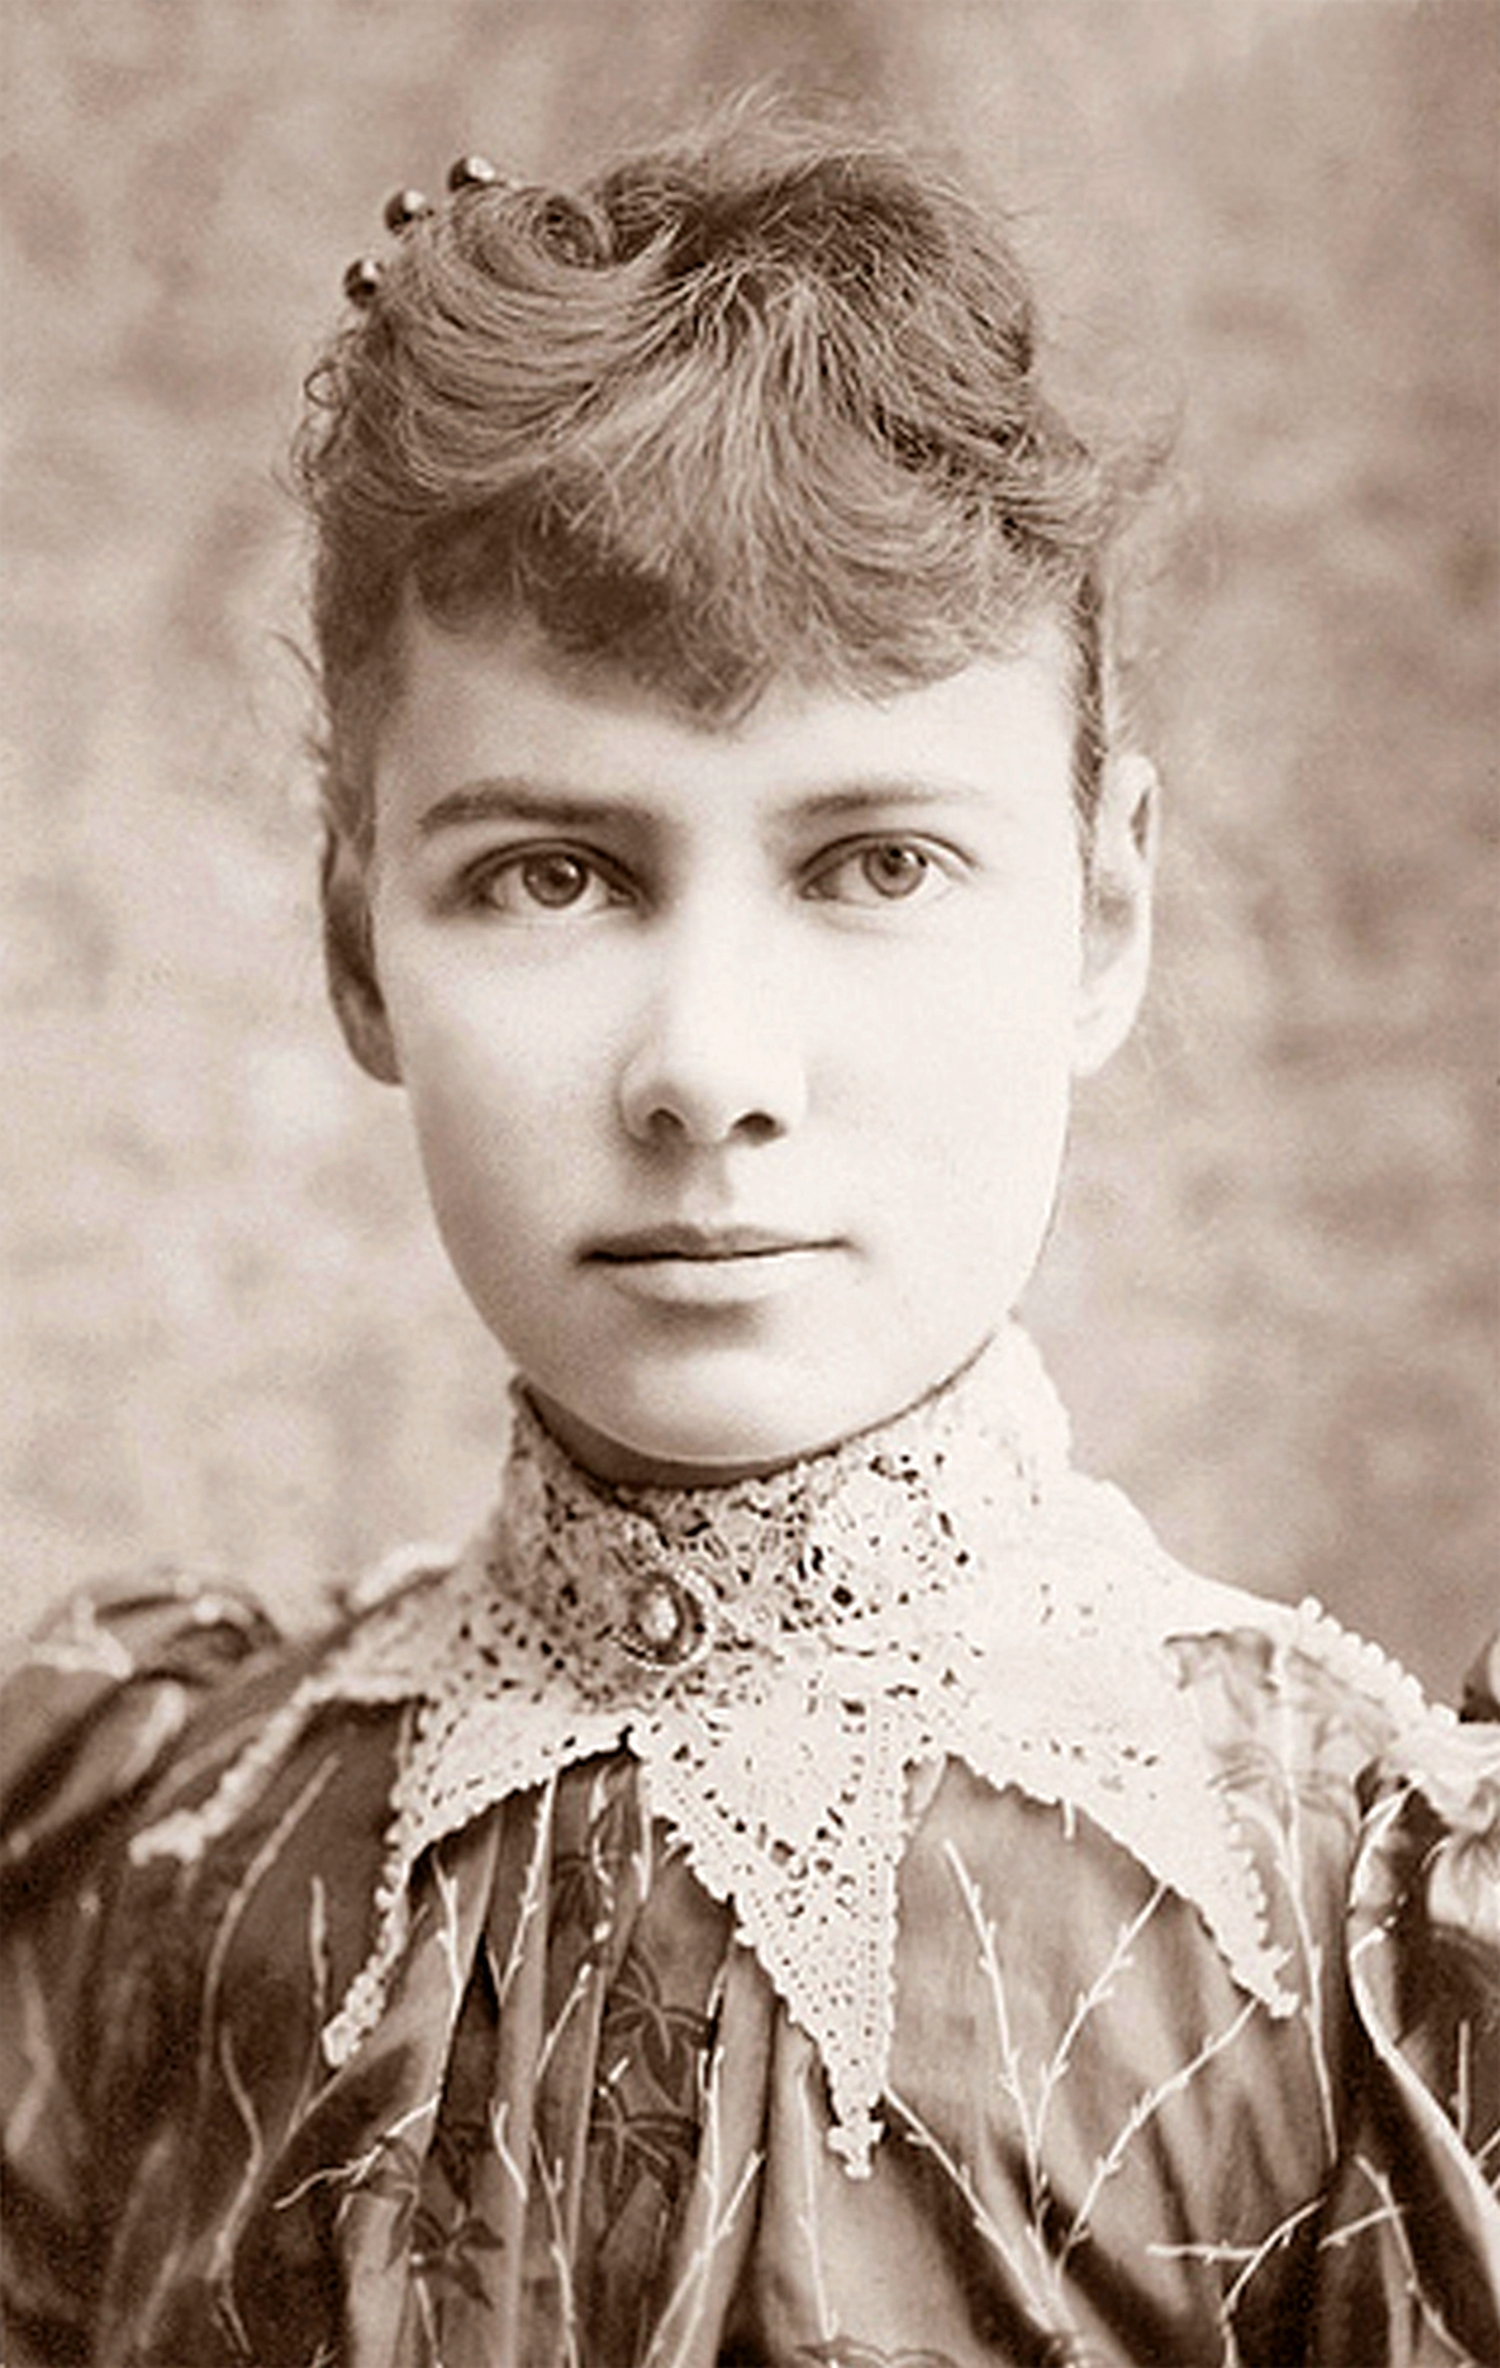 "Elizabeth Cochran Seaman  (1864-1922) adopted the pen name ""Nellie Bly"" to go undercover as an investigative journalist in the 1880s. She is best known for infiltrating an insane asylum on Blackwell's Island in New York to expose the unfair treatment of patients. Her reporting led to New York City improving conditions for the mentally ill."